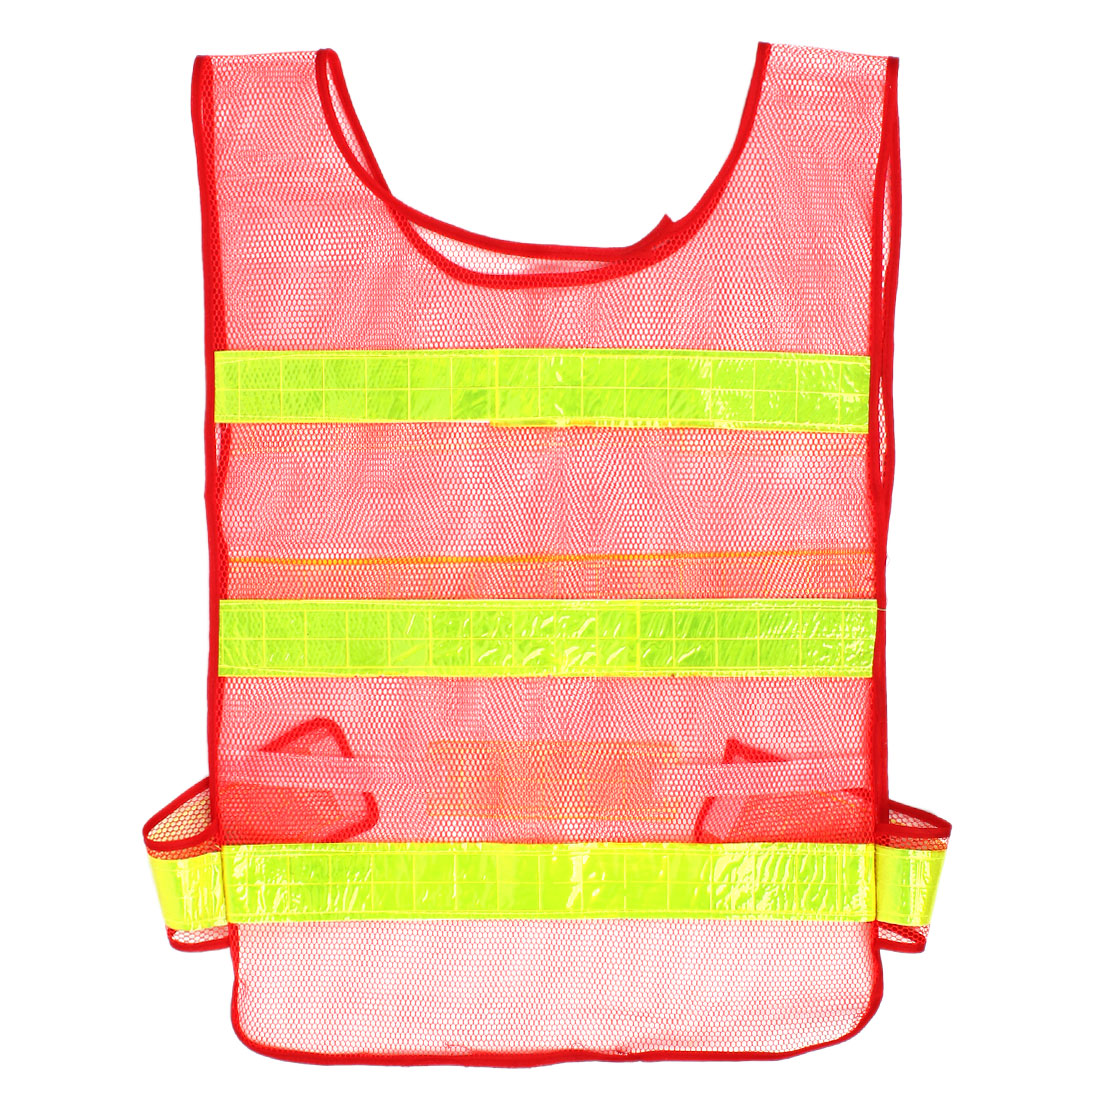 Reflective Meshy Style Traffic Safety Security Vest Red 57cm x 40cm 2pcs